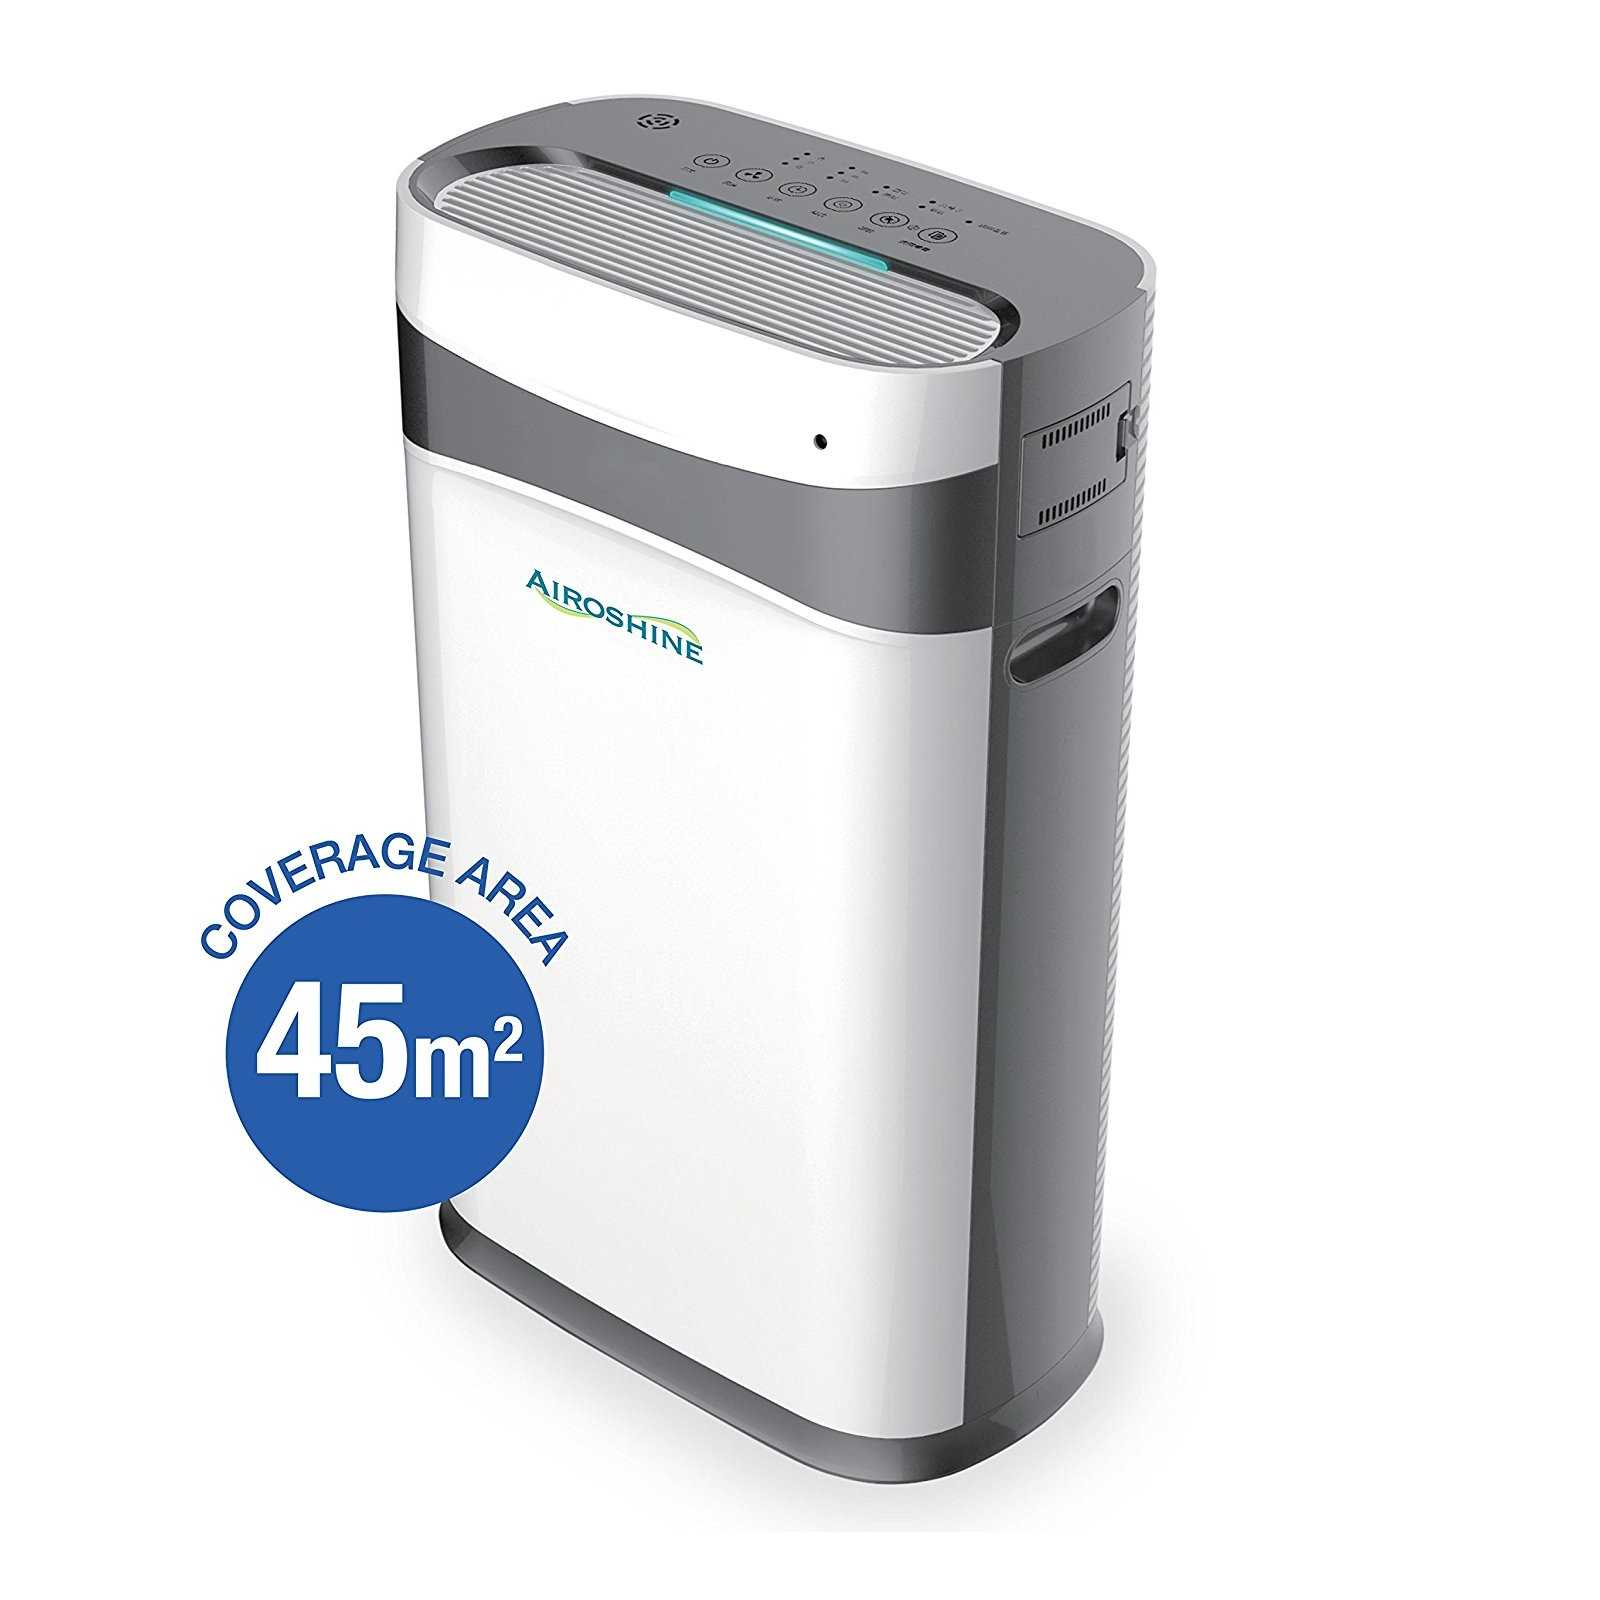 Airoshine A-016 Room Air Purifier